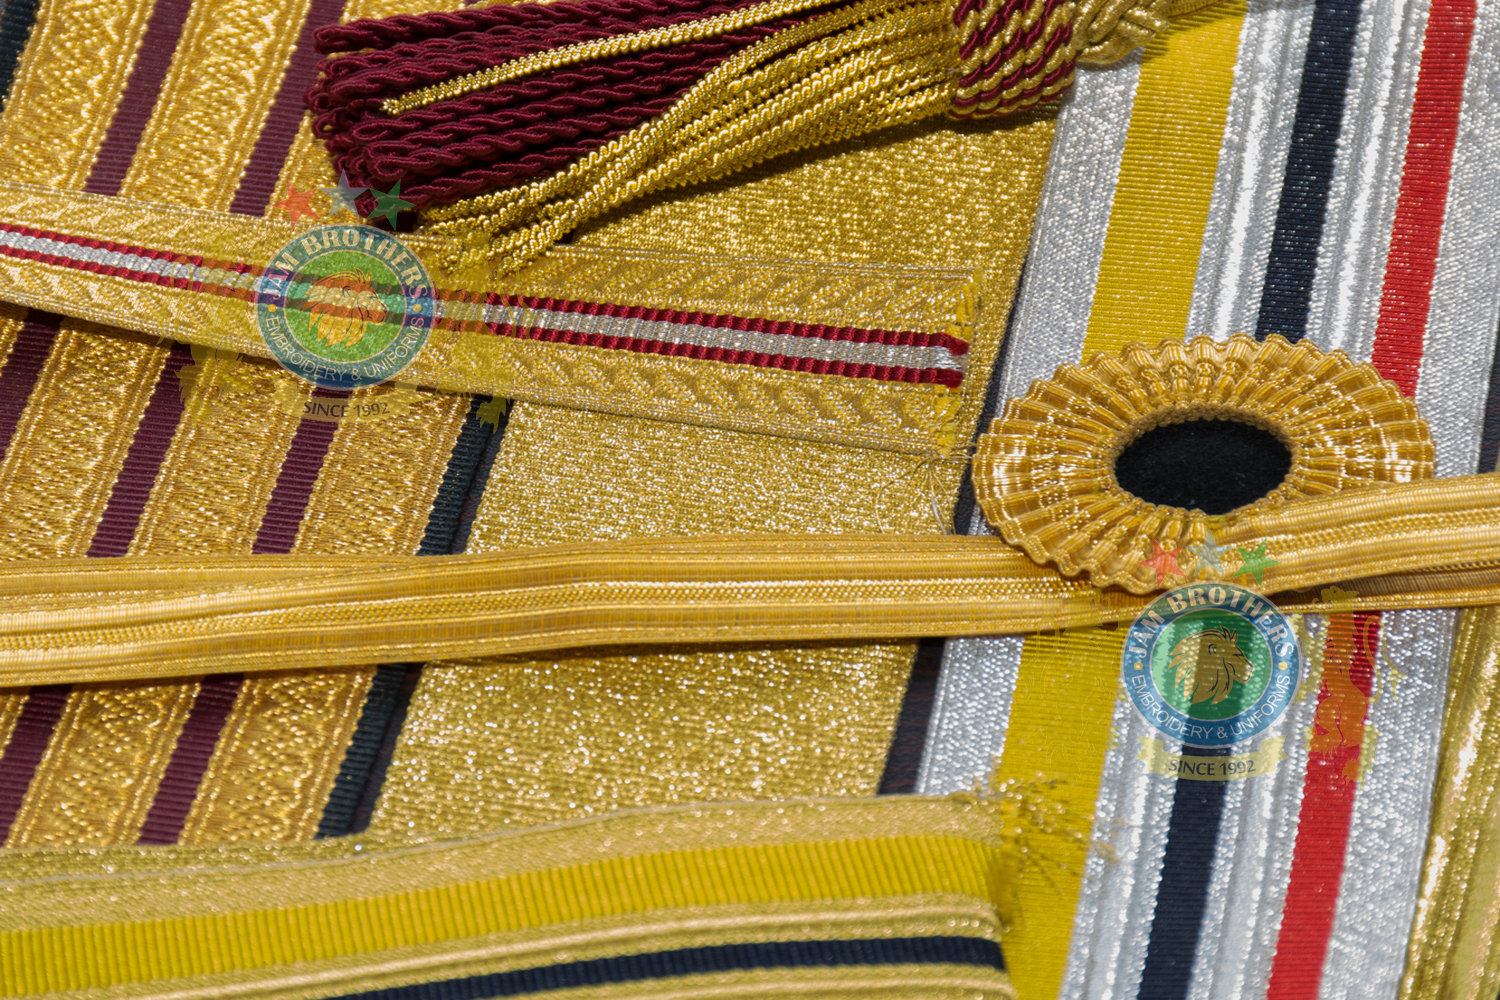 Lace Trimming Braid Gold White Silver Blue Weave Weaving Uniforms Accouterments Tailor Belts Leather Ceremonial Combat Cadet Parade Belts #Hand Embroidery #BullionEmbroidery #TradeBadges #MessDress #Badges #Ranks #Regiment #Parade #Ceremonial #Cord #Textile #ArmedForces #BritishArmy #Army #Aiguillette #Military #MilitaryUniforms #Militaria #Insignia #Headwear #Caps #OfficerCaps #UniformCaps #PeakCaps #DressCaps #MilitaryCaps #RailCap #Berets #Glengarry #RoyalNavy #RoyalMarine #RoyalAirForce #RAF #Infantry #Armor #EME #Battalion #Medals #Ribbons #Braid #Lace #Uniforms #UniformSupplie #Police #Security #Buckles #Guards #Accoutrement #Badge #Patch #Machine #MachineEmbroidery #HandEmbroidery #Bullion #BullionBadges #BullionEmbroidery #WovenBadges #Woven # Emblems #Regiment #Regimental #OfficerCaps #PeakCaps #Soldier #Helmets #Covers #HelmetCovers #Armlets #Sliders #Epaulettes #Webbing #Chevron #Officer #ShoulderBoards #Gorgets #Tassel #Sash #Hand #HandSewn #Aviation #AviationClothing #Crest #FamilyCrest #CoatofArms #EmbroideredPillows #Cords #Aiguillettes #CapCords #ChinCord #DressCord #SwordKnot #Tassels #WhistleCord #Lanyard #Knots #Banners #ClanBadges #Peaks #Visor #Wings #CapBadges #Pennants #HonorCaps #OfficerCaps #SportsCap #Masonic #Aprons #MasonicAprons #Collars #MasonicCollars #Gloves #MasonicGloves #MasonicPatches #Patches #Regalia #MasonicRegalia #Freemason #Braid #Chevron #Cuffs #Fringes #Sashes #HeadGear #FieldGear #England #USA #Poland #ArmedForces #Schools #Colleges #University #Sialkot #Pakistan Sialkot Pakistan PeakCaps OfficerCaps ShoulderRanks BullionBadges UniformAccessories MilitaryUniforms DressCap TradeBadge RankMarking WireBadges Army Airforce Navy Police